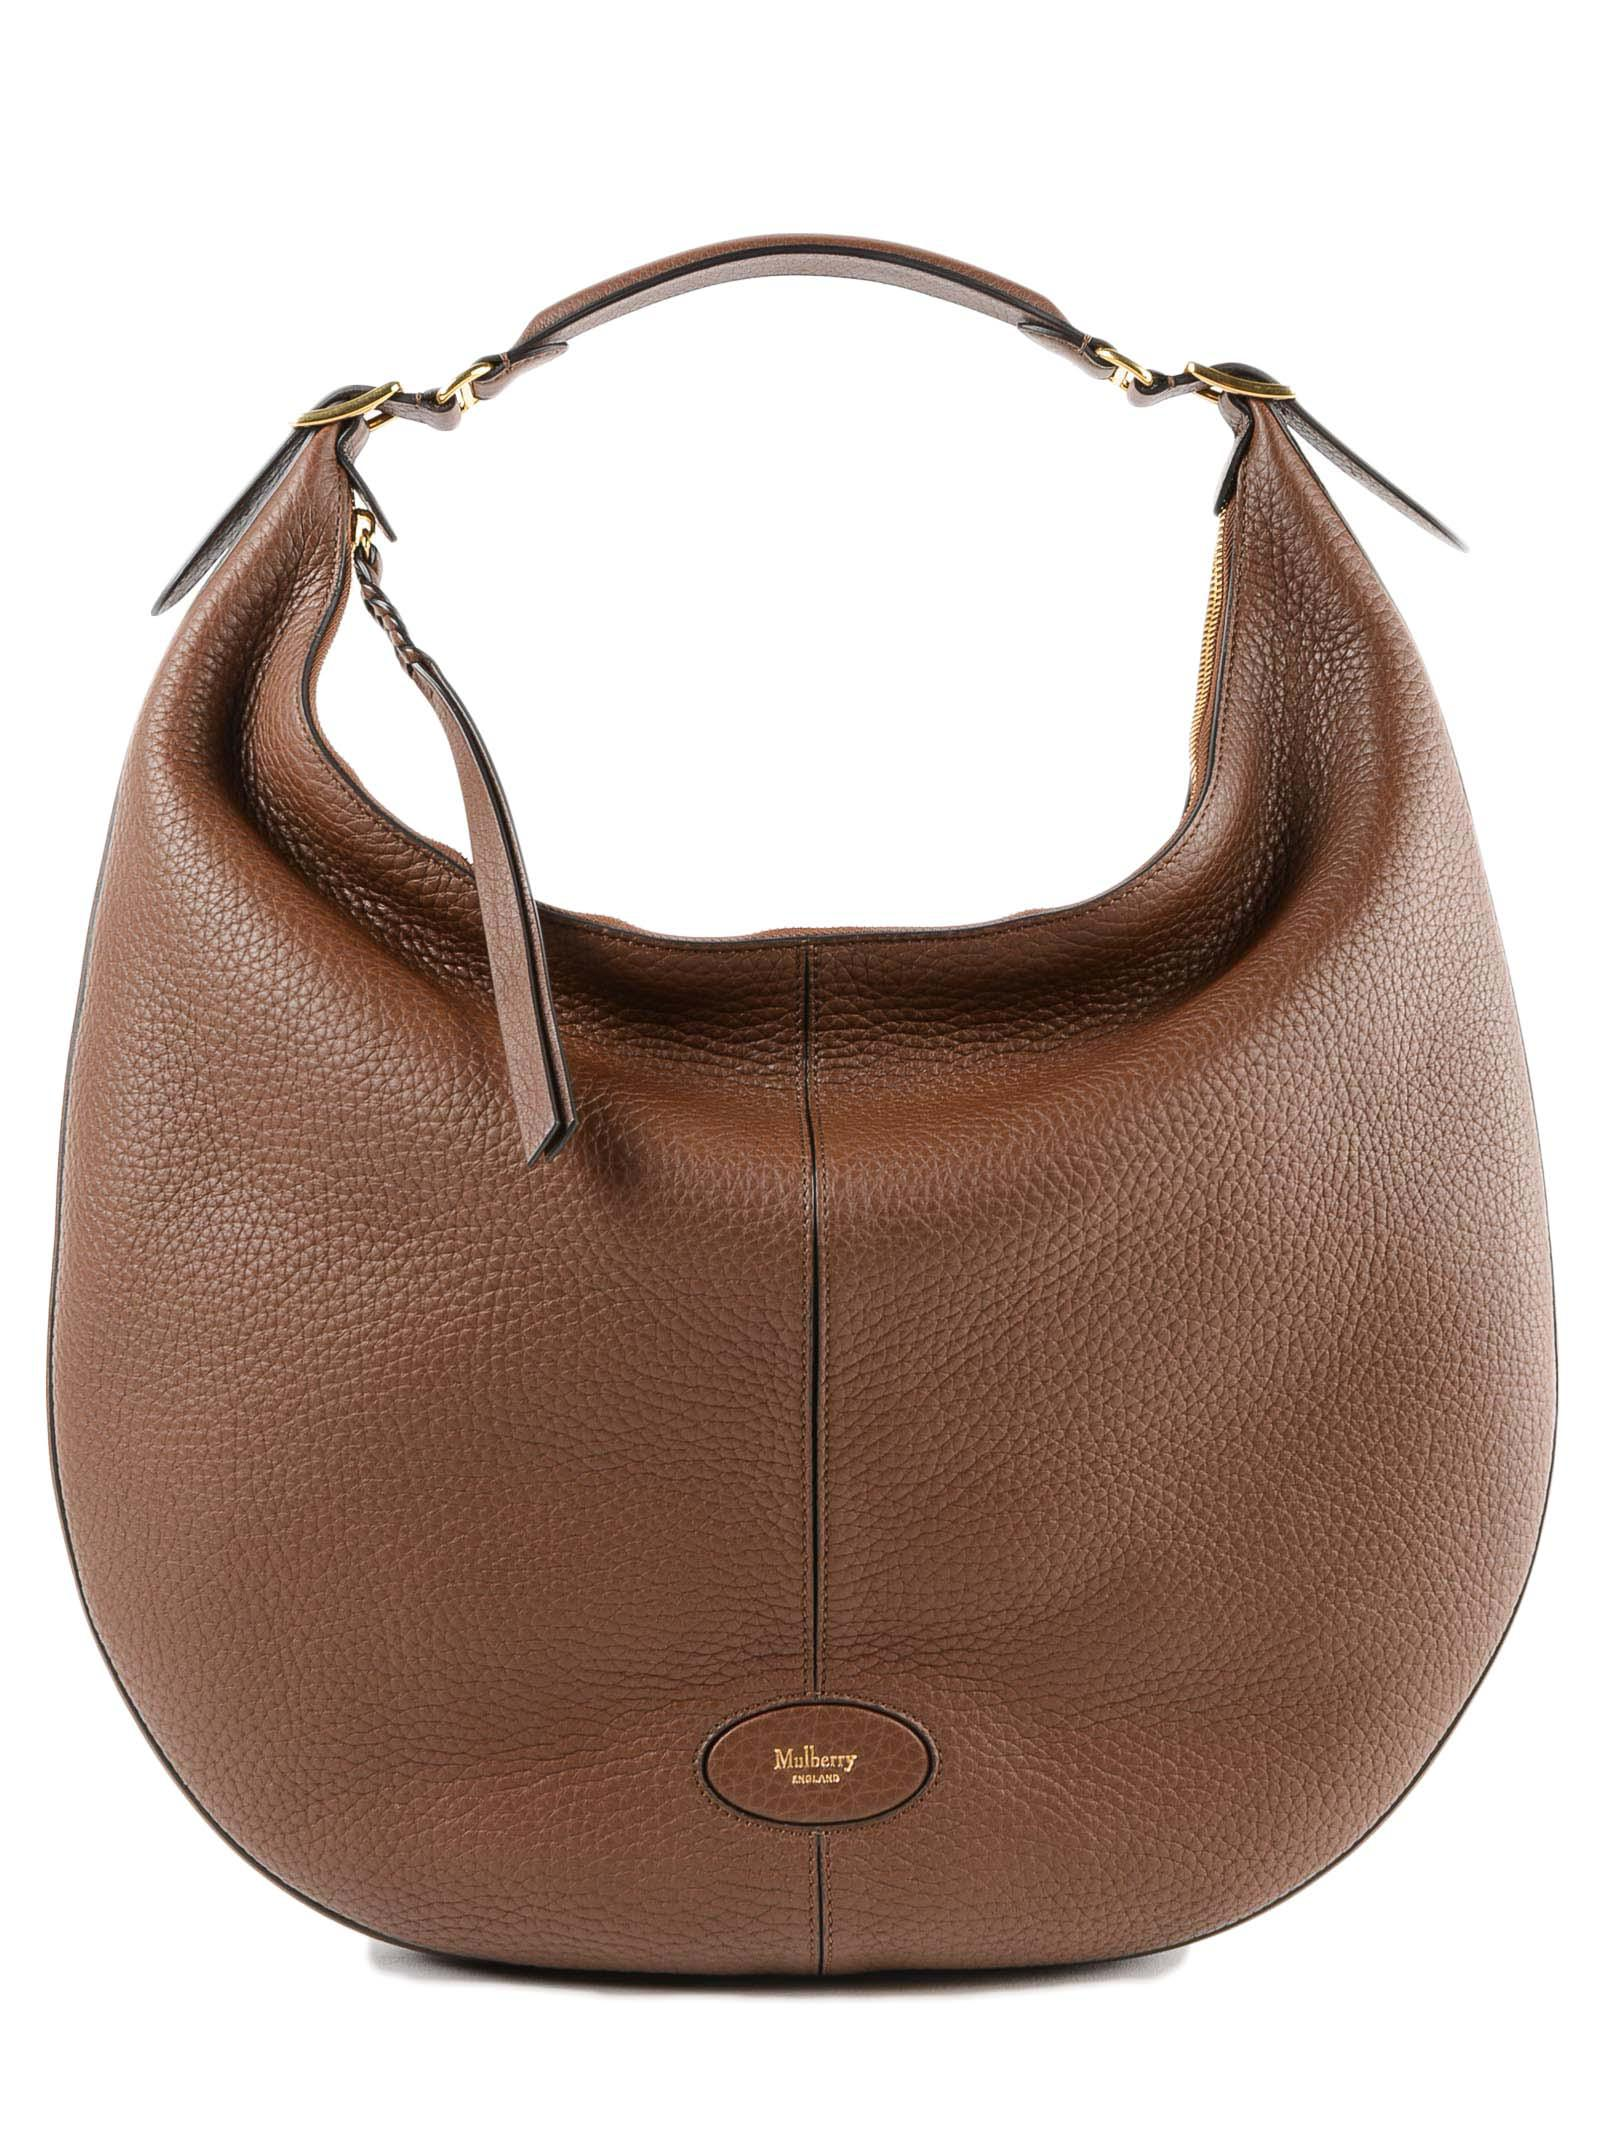 965c3c8fd6 Mulberry L Selby Bag in Brown - Lyst